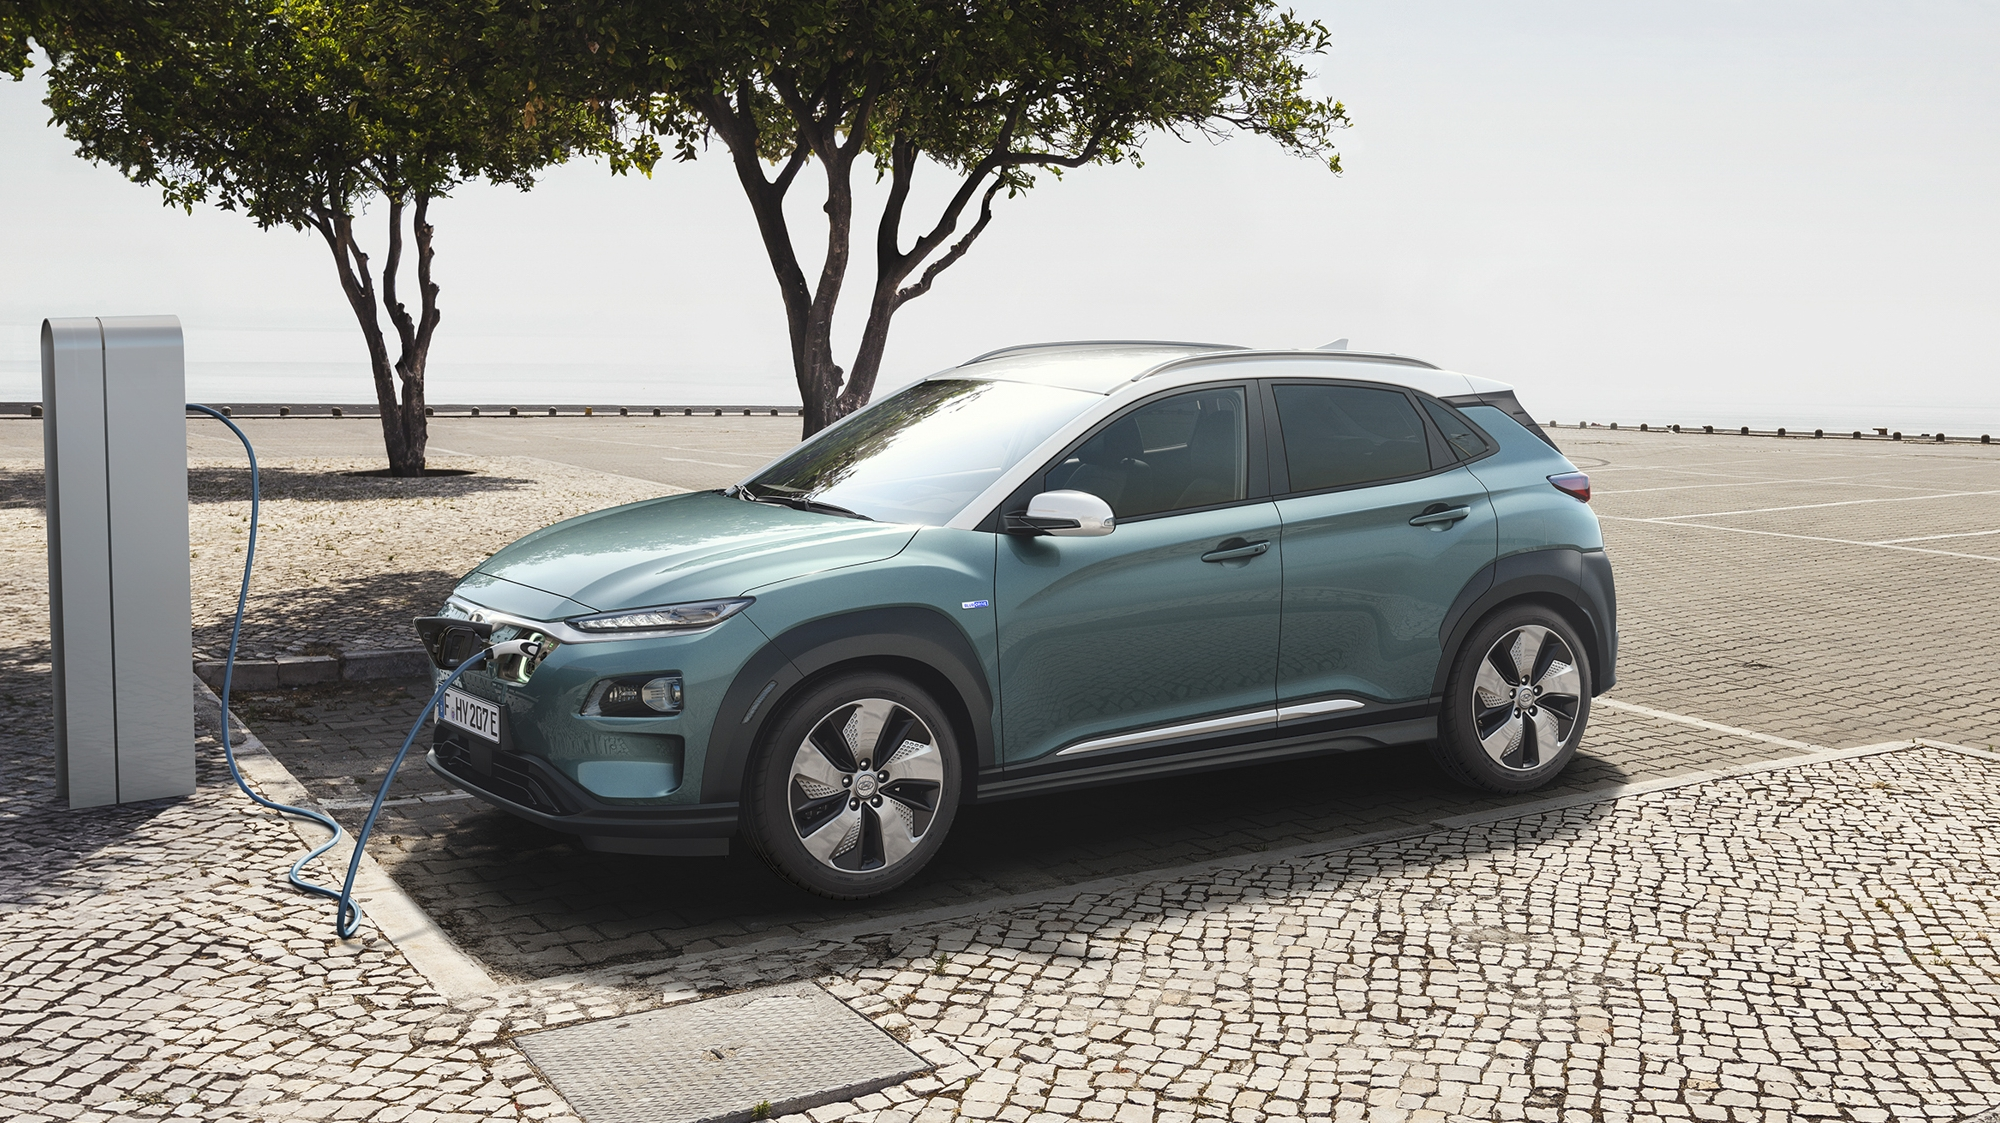 2019 hyundai kona electric review gallery top speed. Black Bedroom Furniture Sets. Home Design Ideas